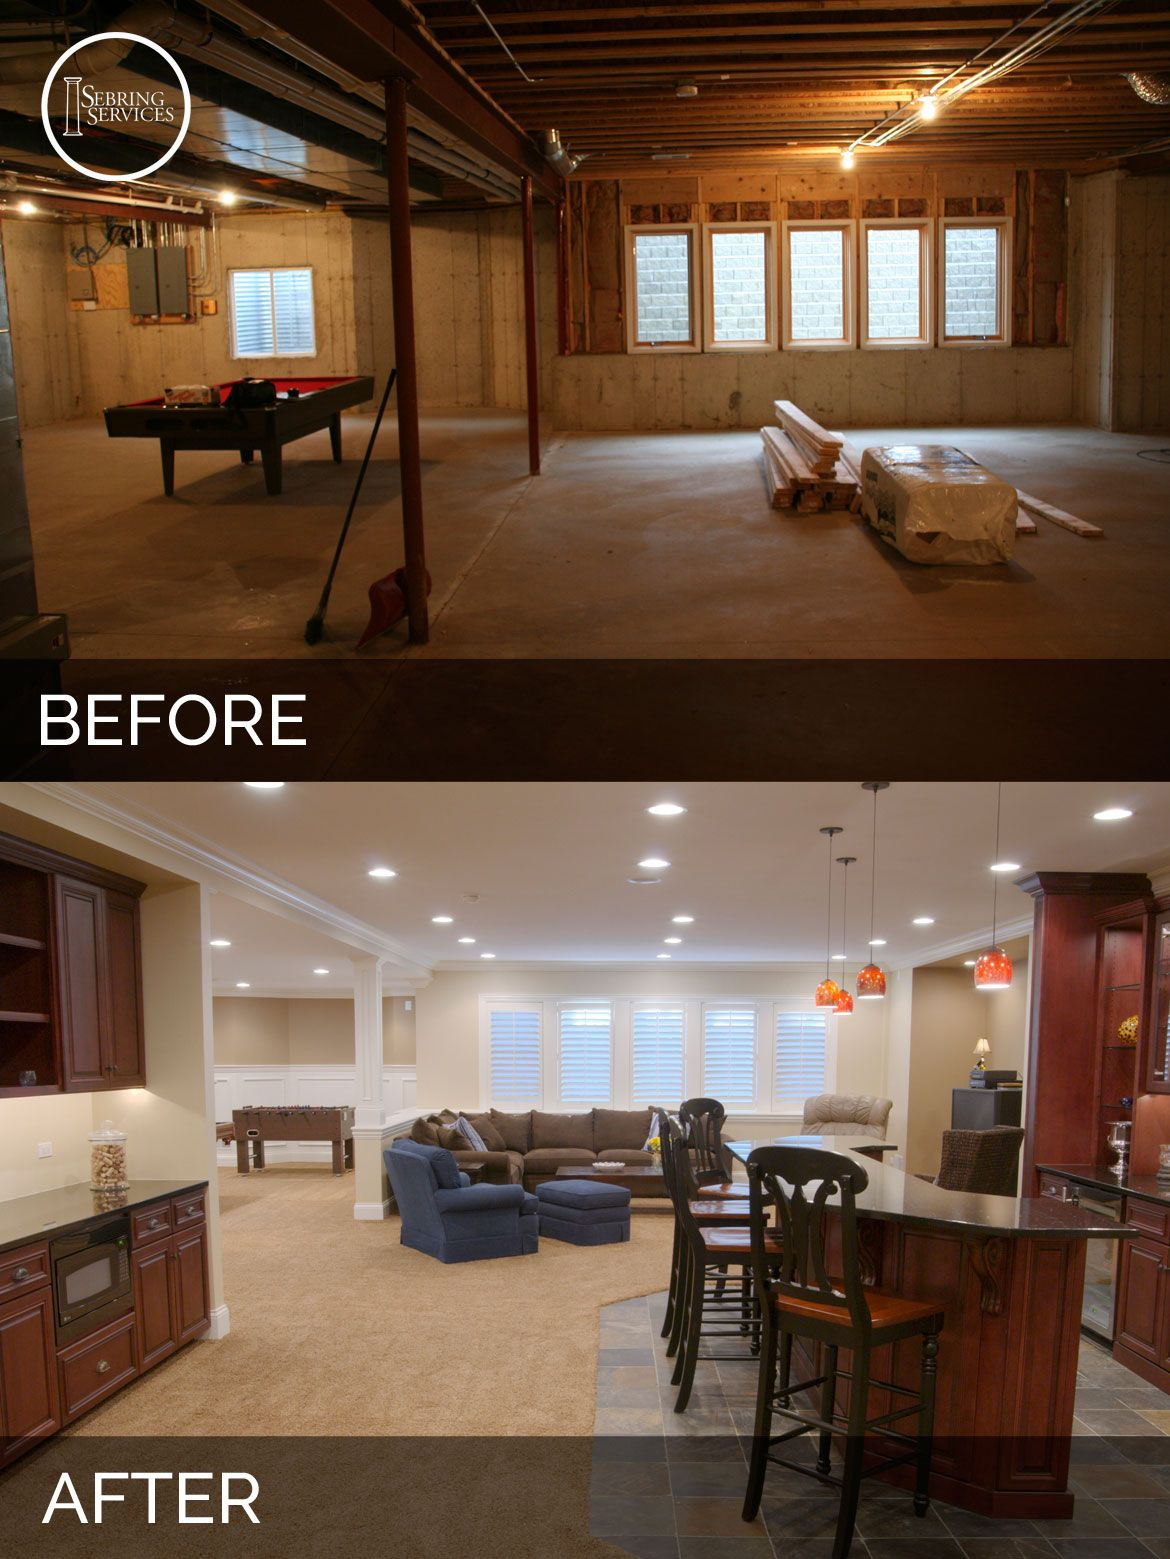 Steve Elaine S Basement Before After Pictures